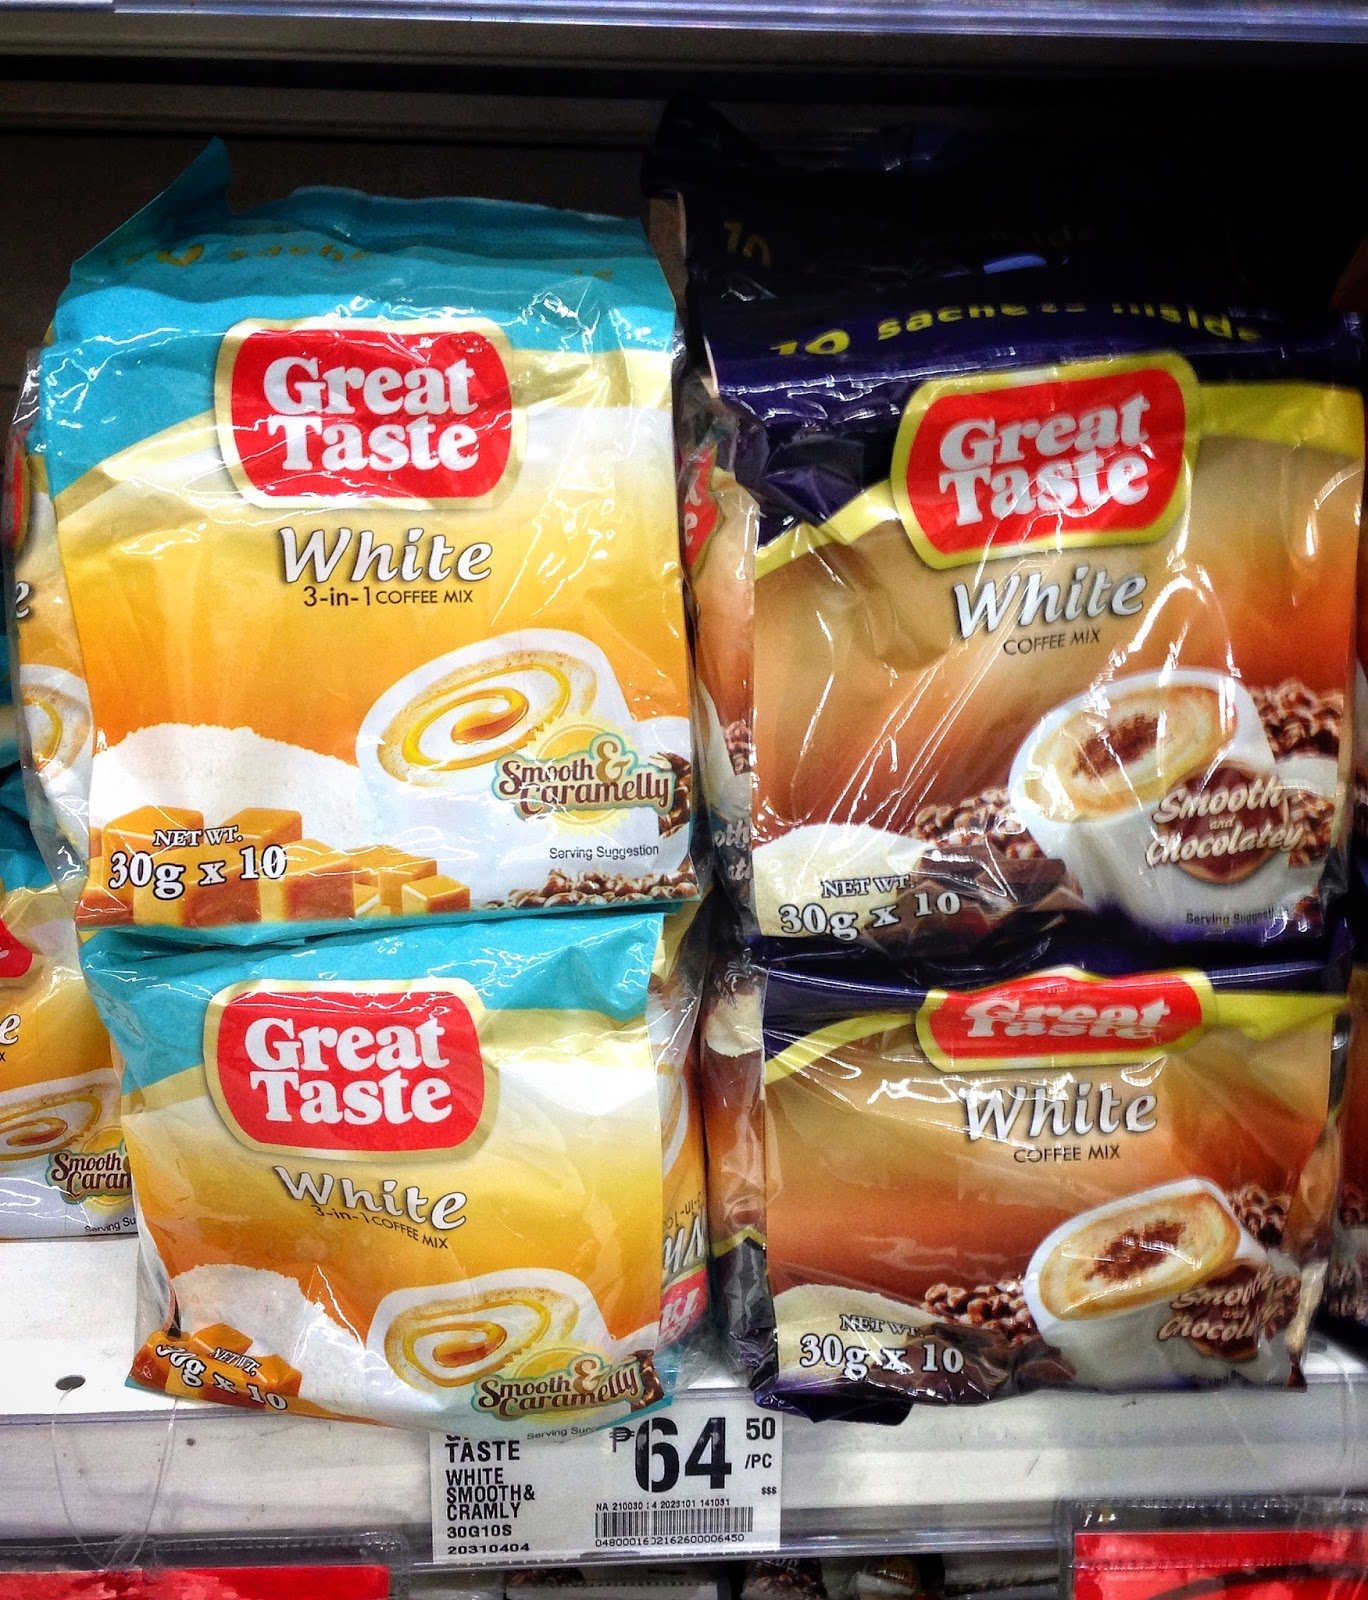 New Great Taste White Flavors Are Out, But Are They Any Good?